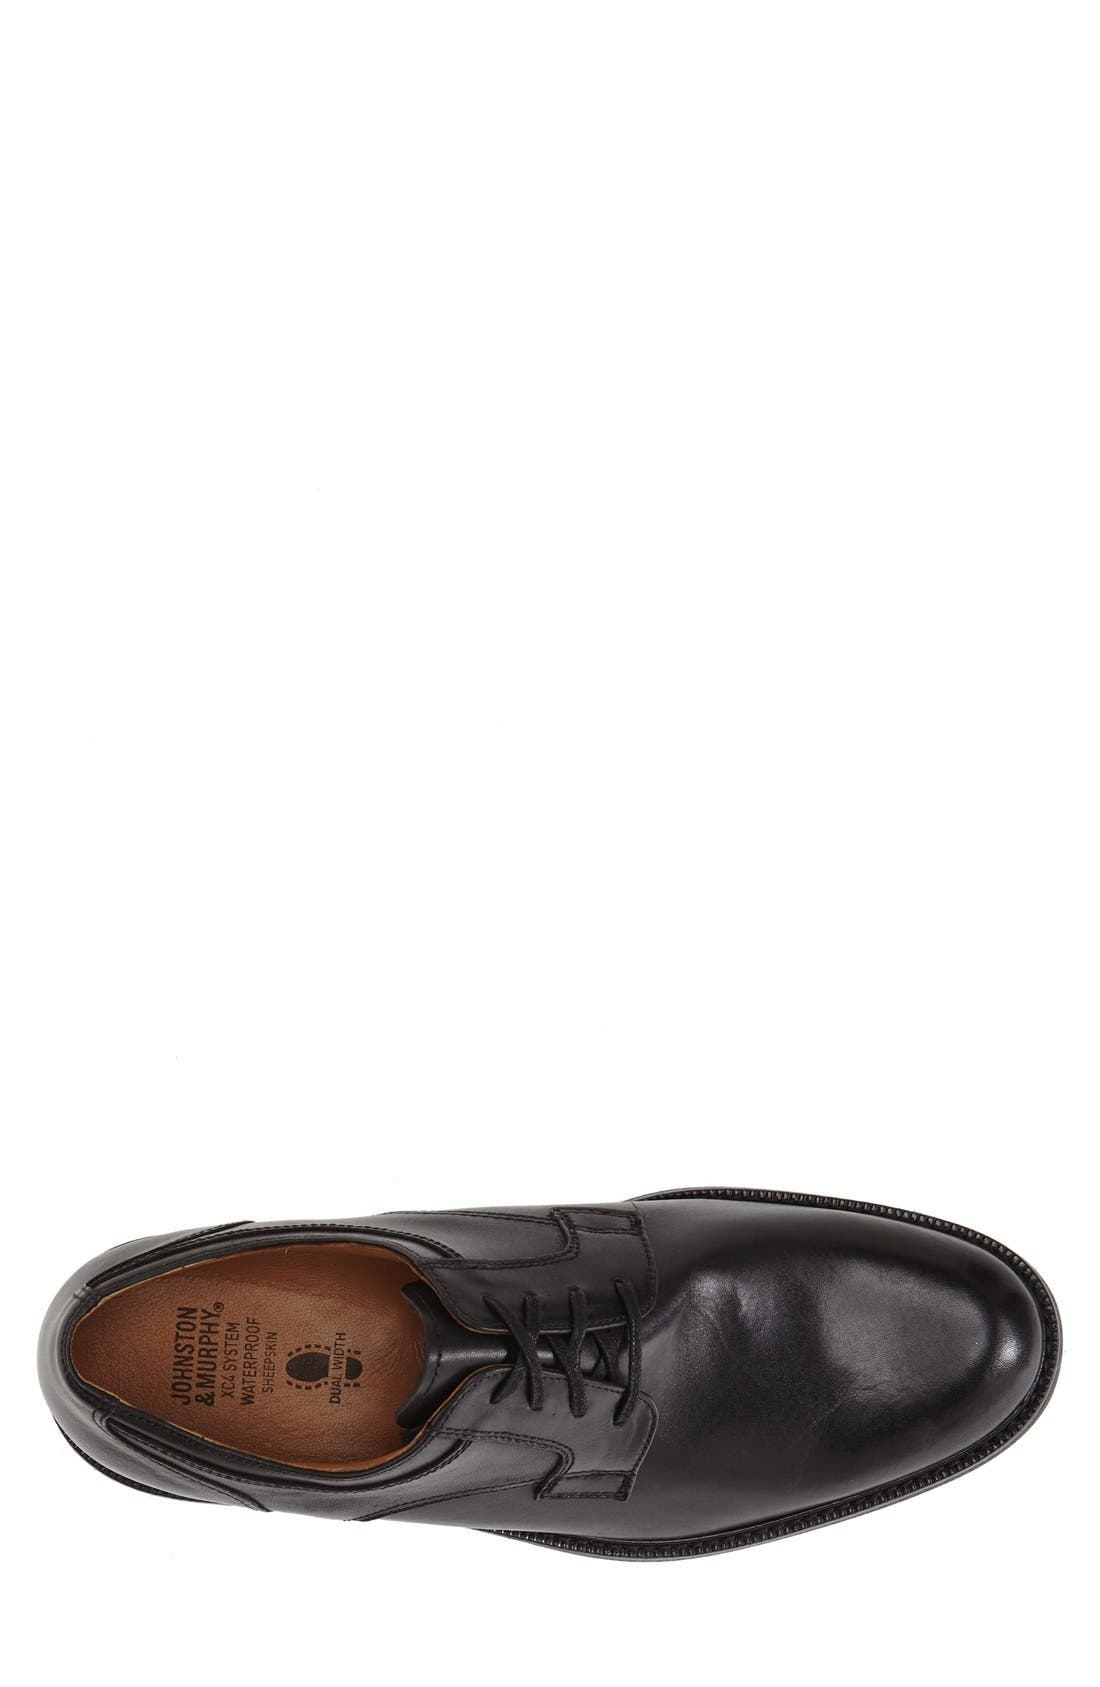 'Cardell' Plain Toe Derby,                             Alternate thumbnail 4, color,                             Black Leather